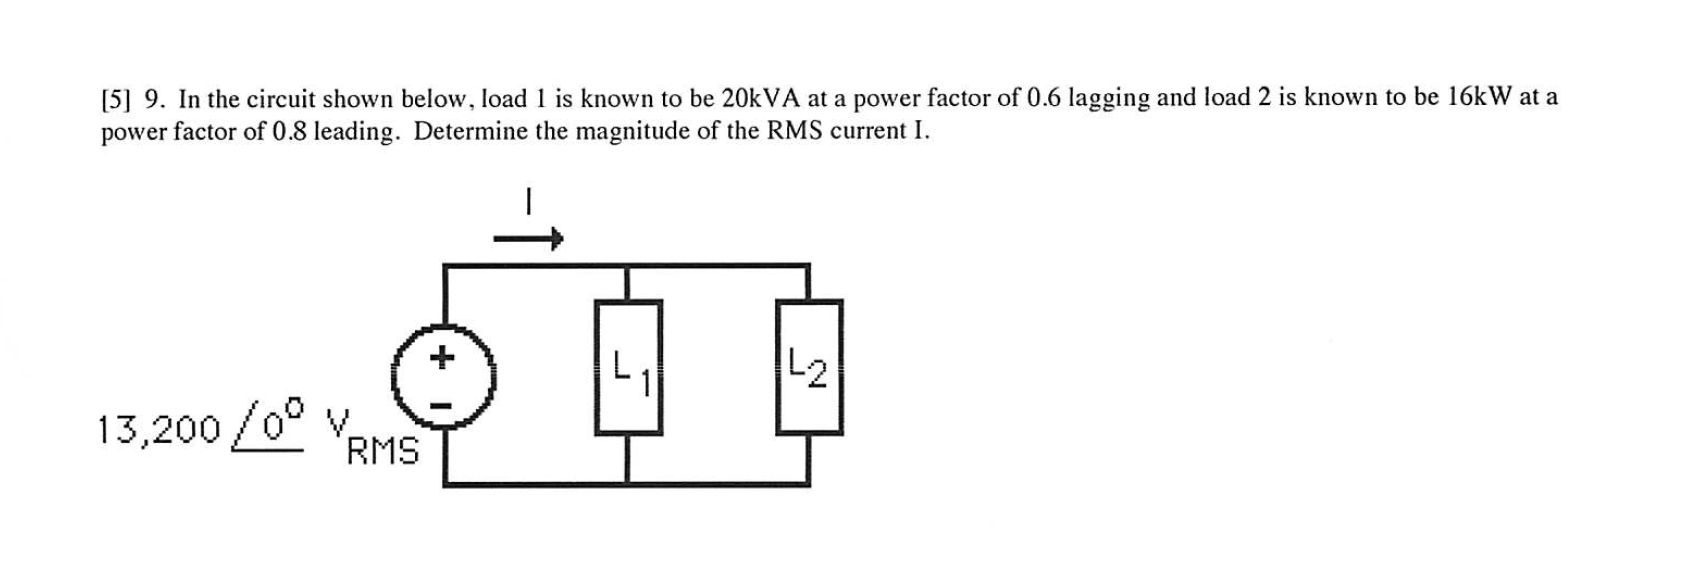 In the circuit shown below. load 1 is known to be